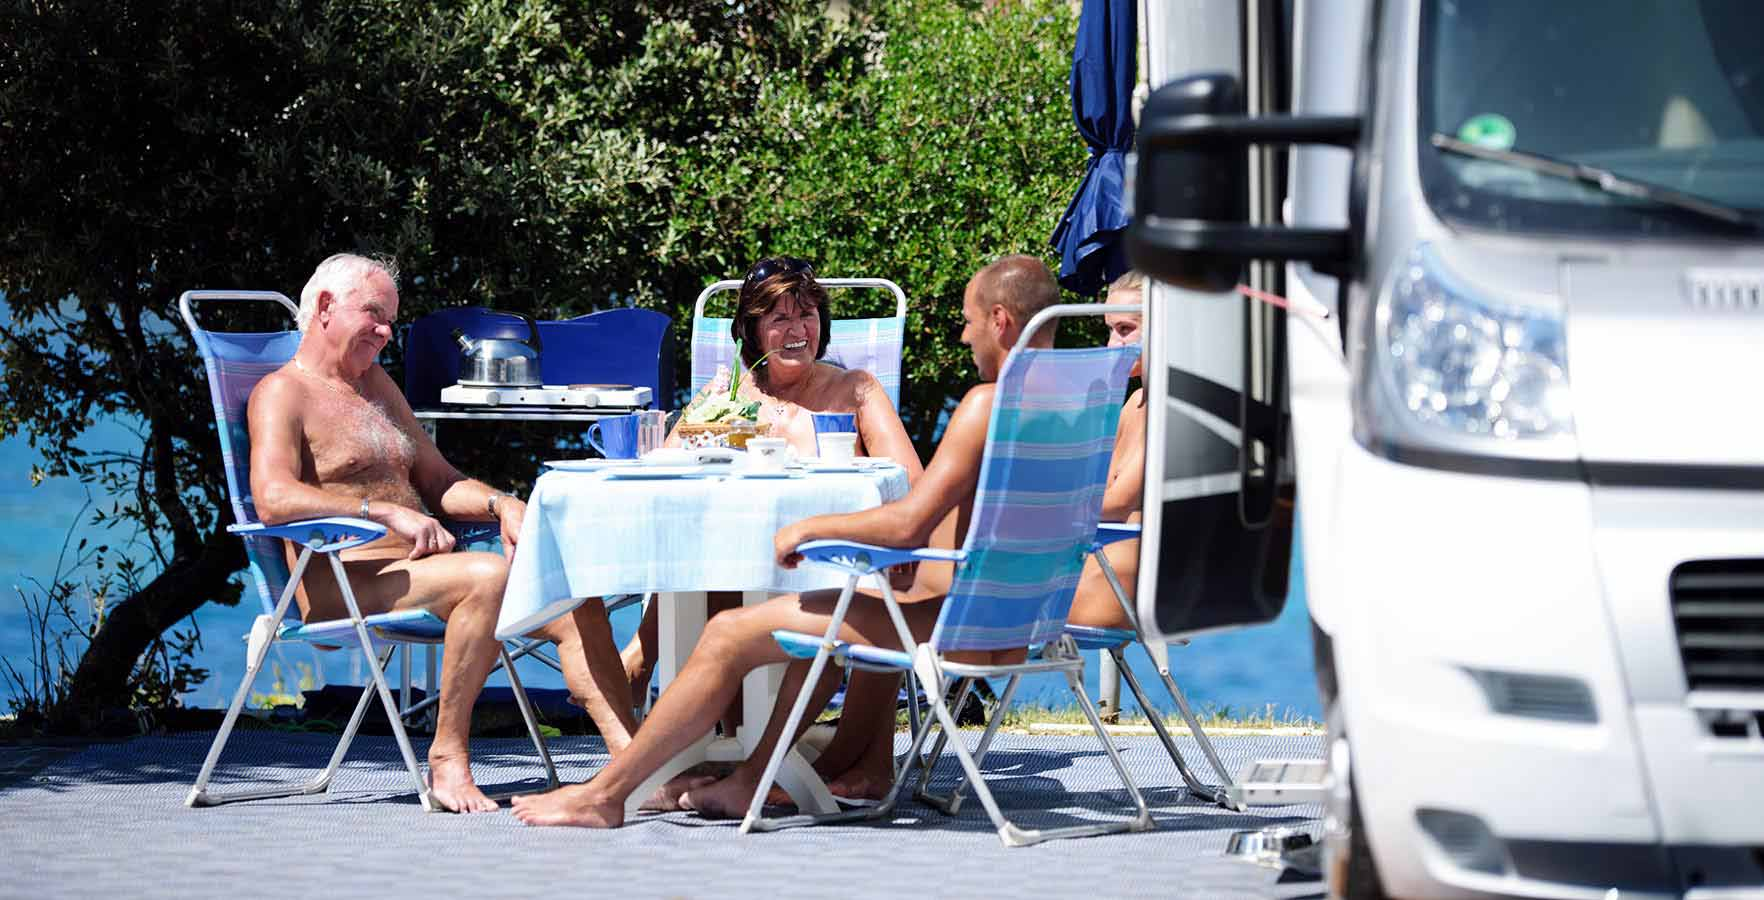 Naturist Camping Koversada - pitches by the sea